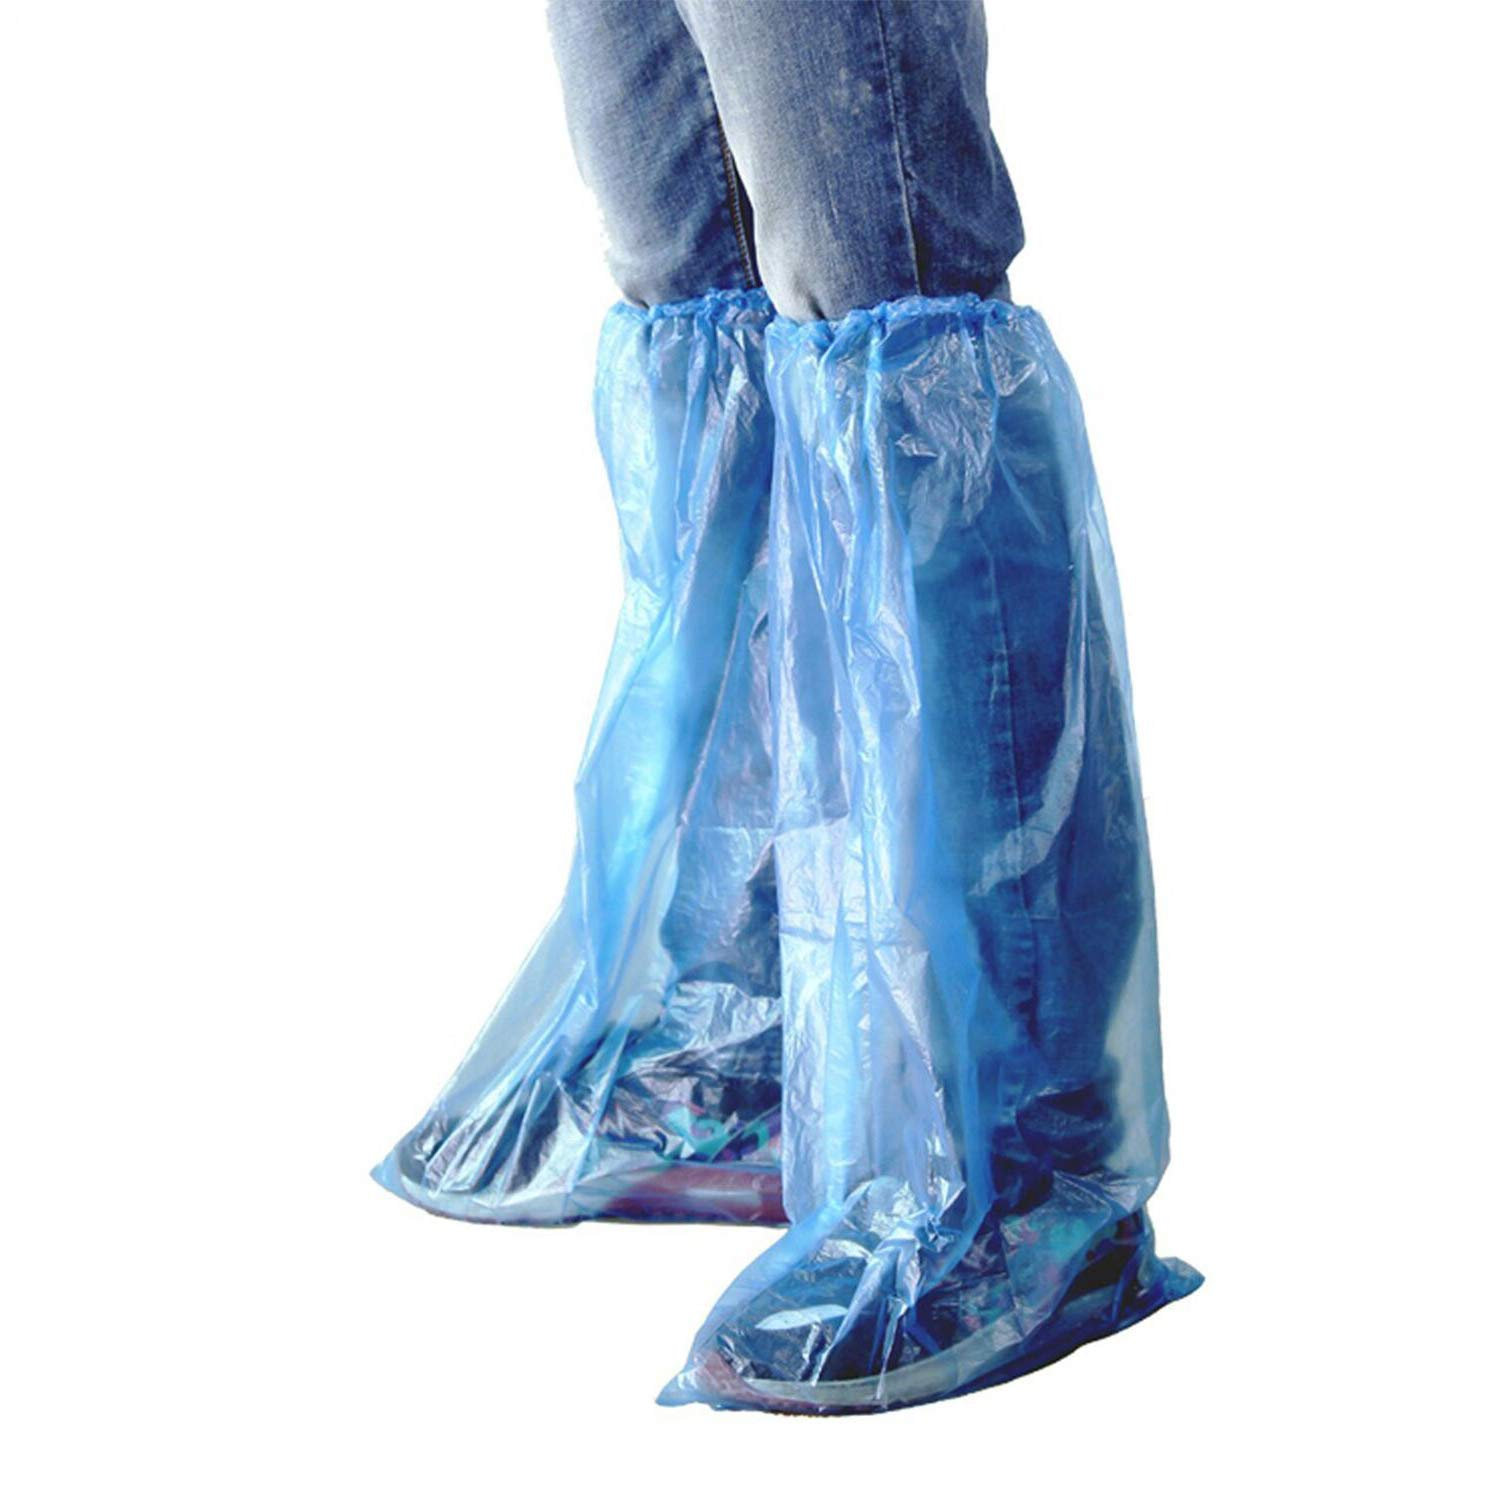 HUABEI 100 Pack Disposable Shoe Covers Blue Rain Shoes and Boots Cover Plastic Shoe Cover Clear Waterproof Anti-Slip Overshoe for Women Men Water Boots Cover Rainy Day Use